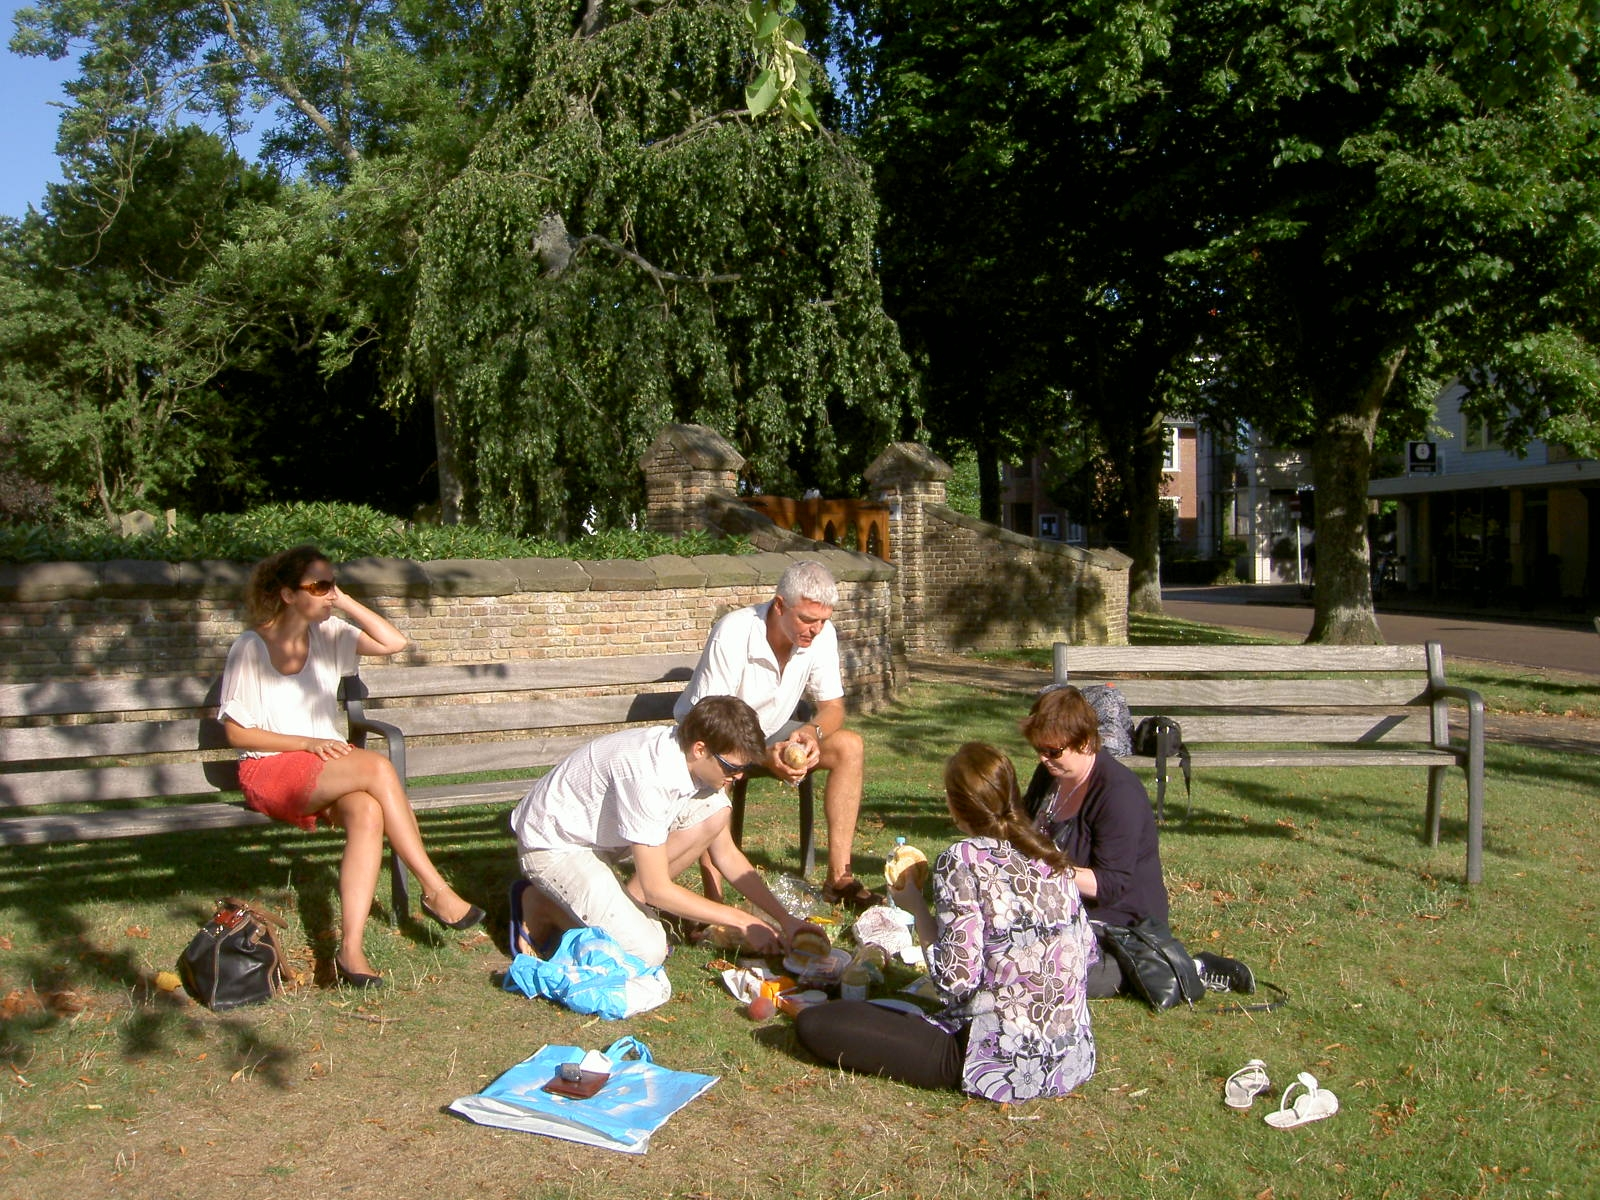 picnic in heiloo, 03-08-13